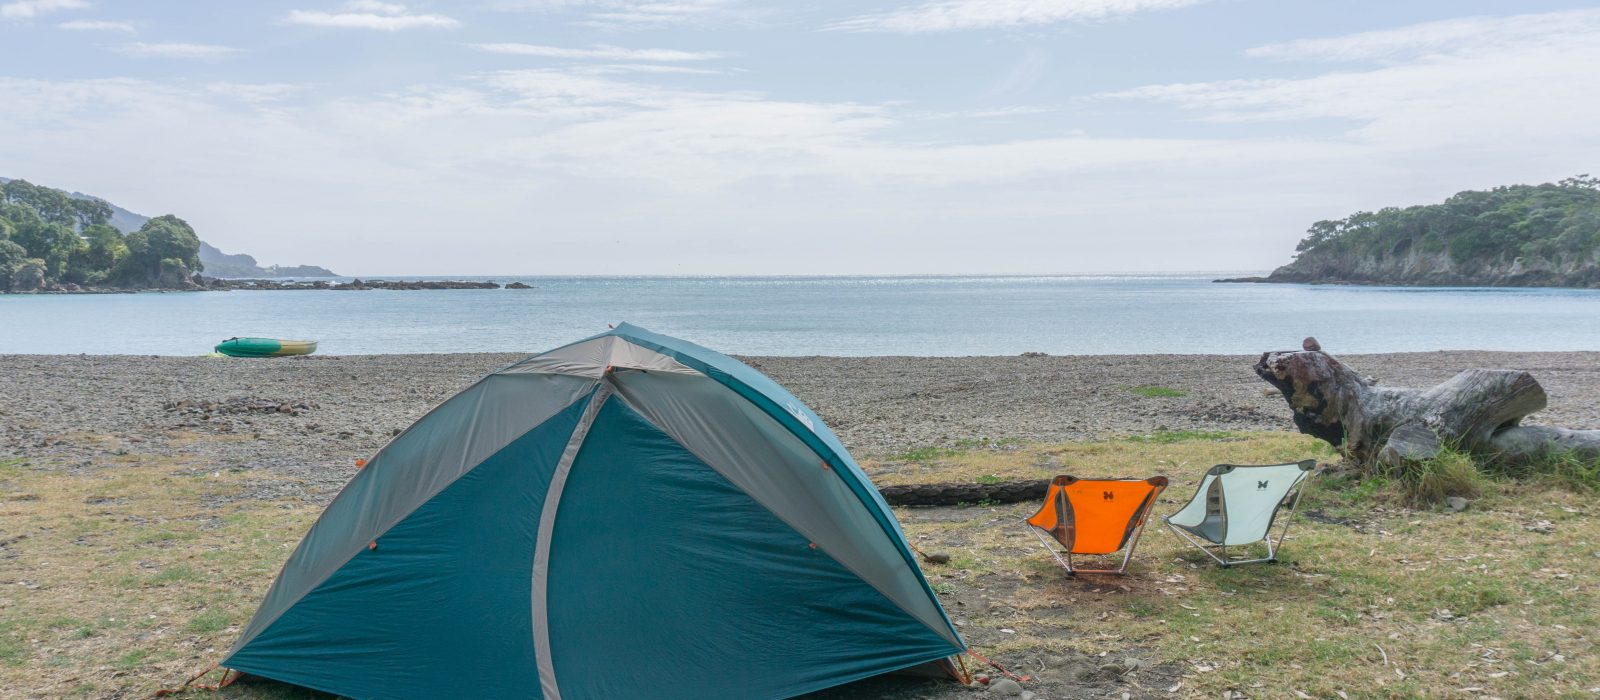 A Back-to-Basics Hideaway by the Sea: Maraehako Campground